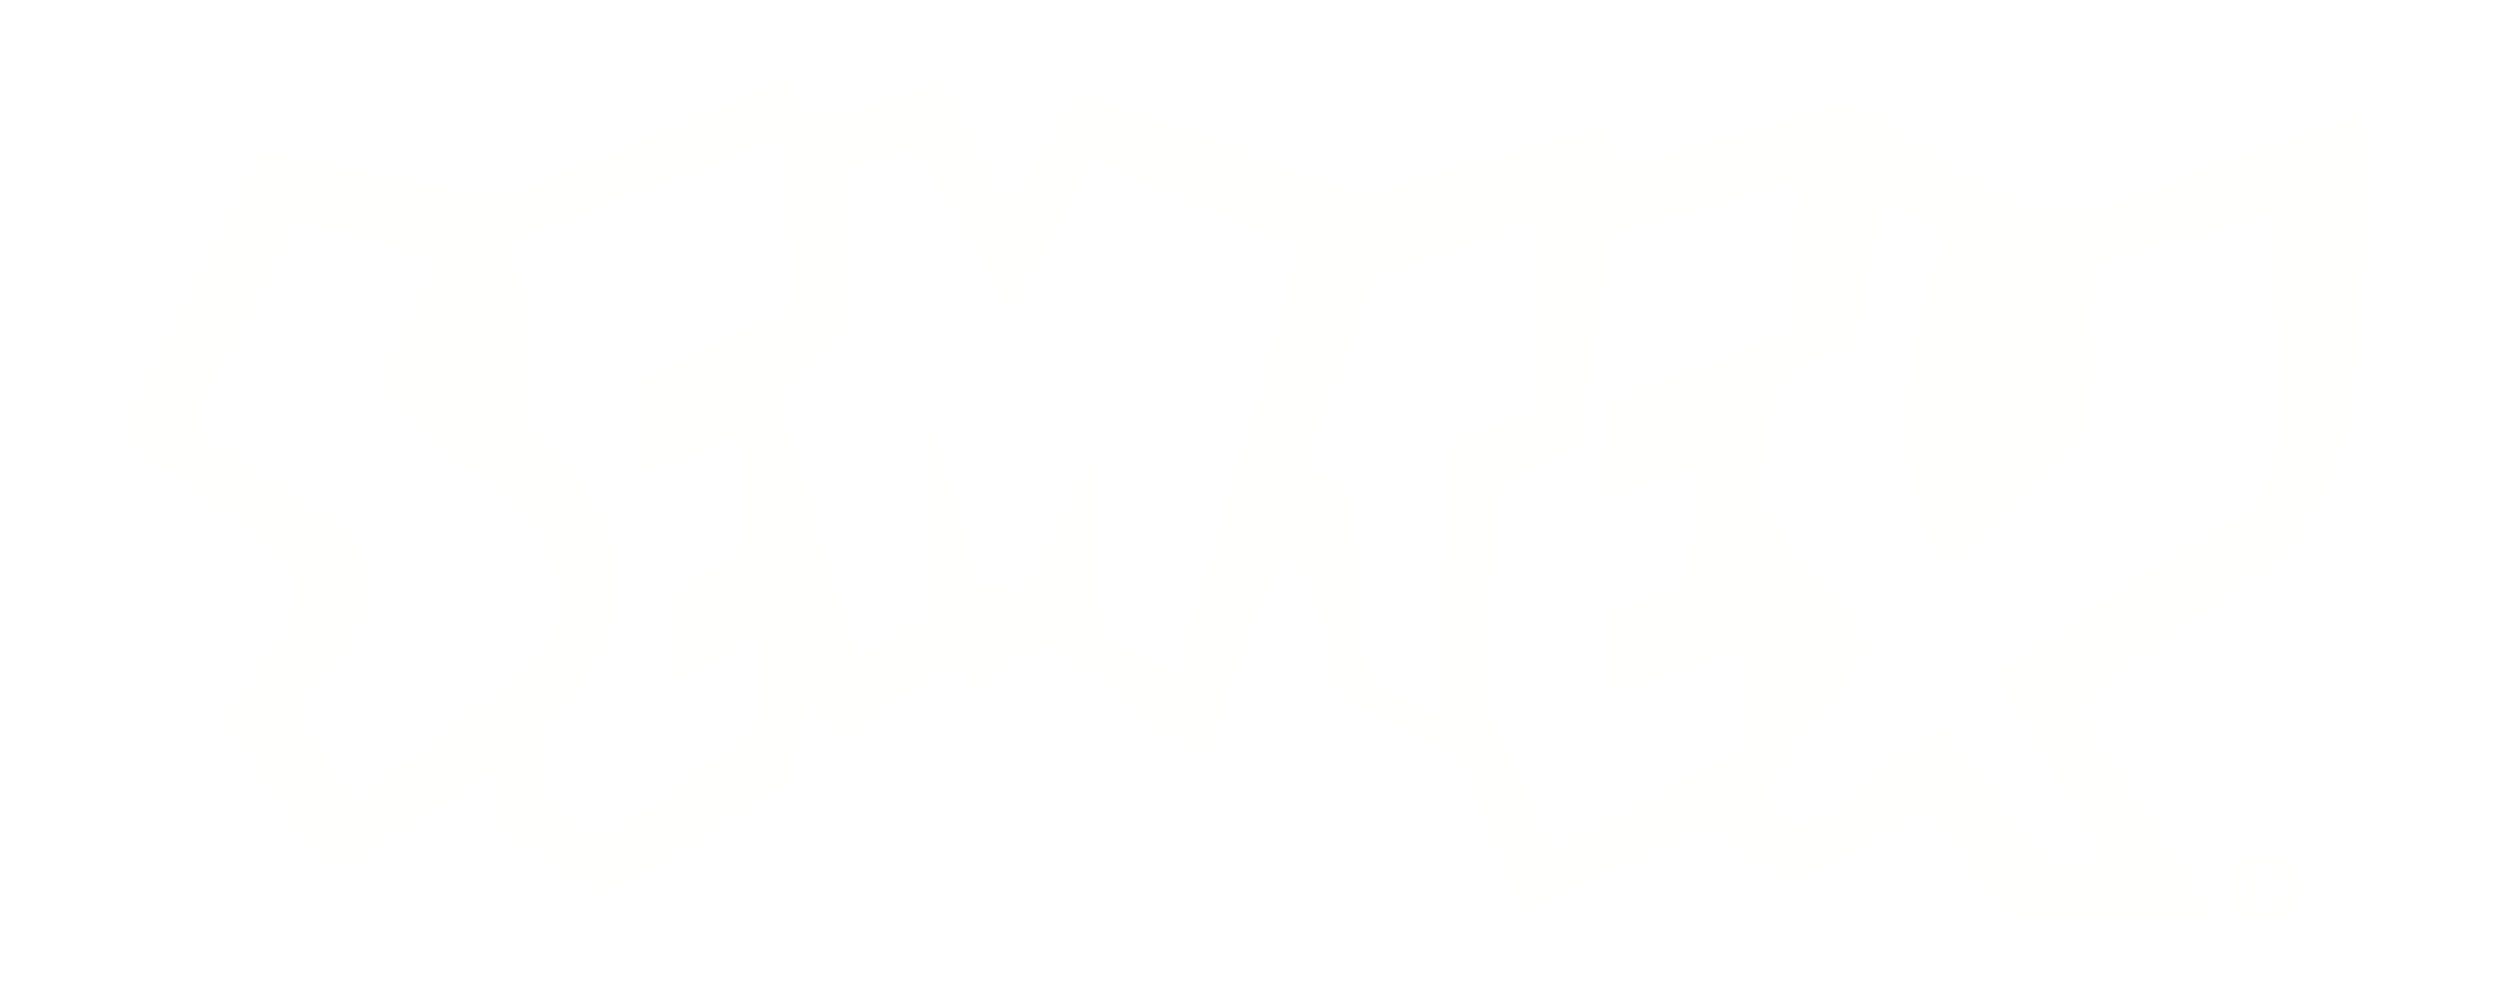 WHITE OUTLINE 2017.png